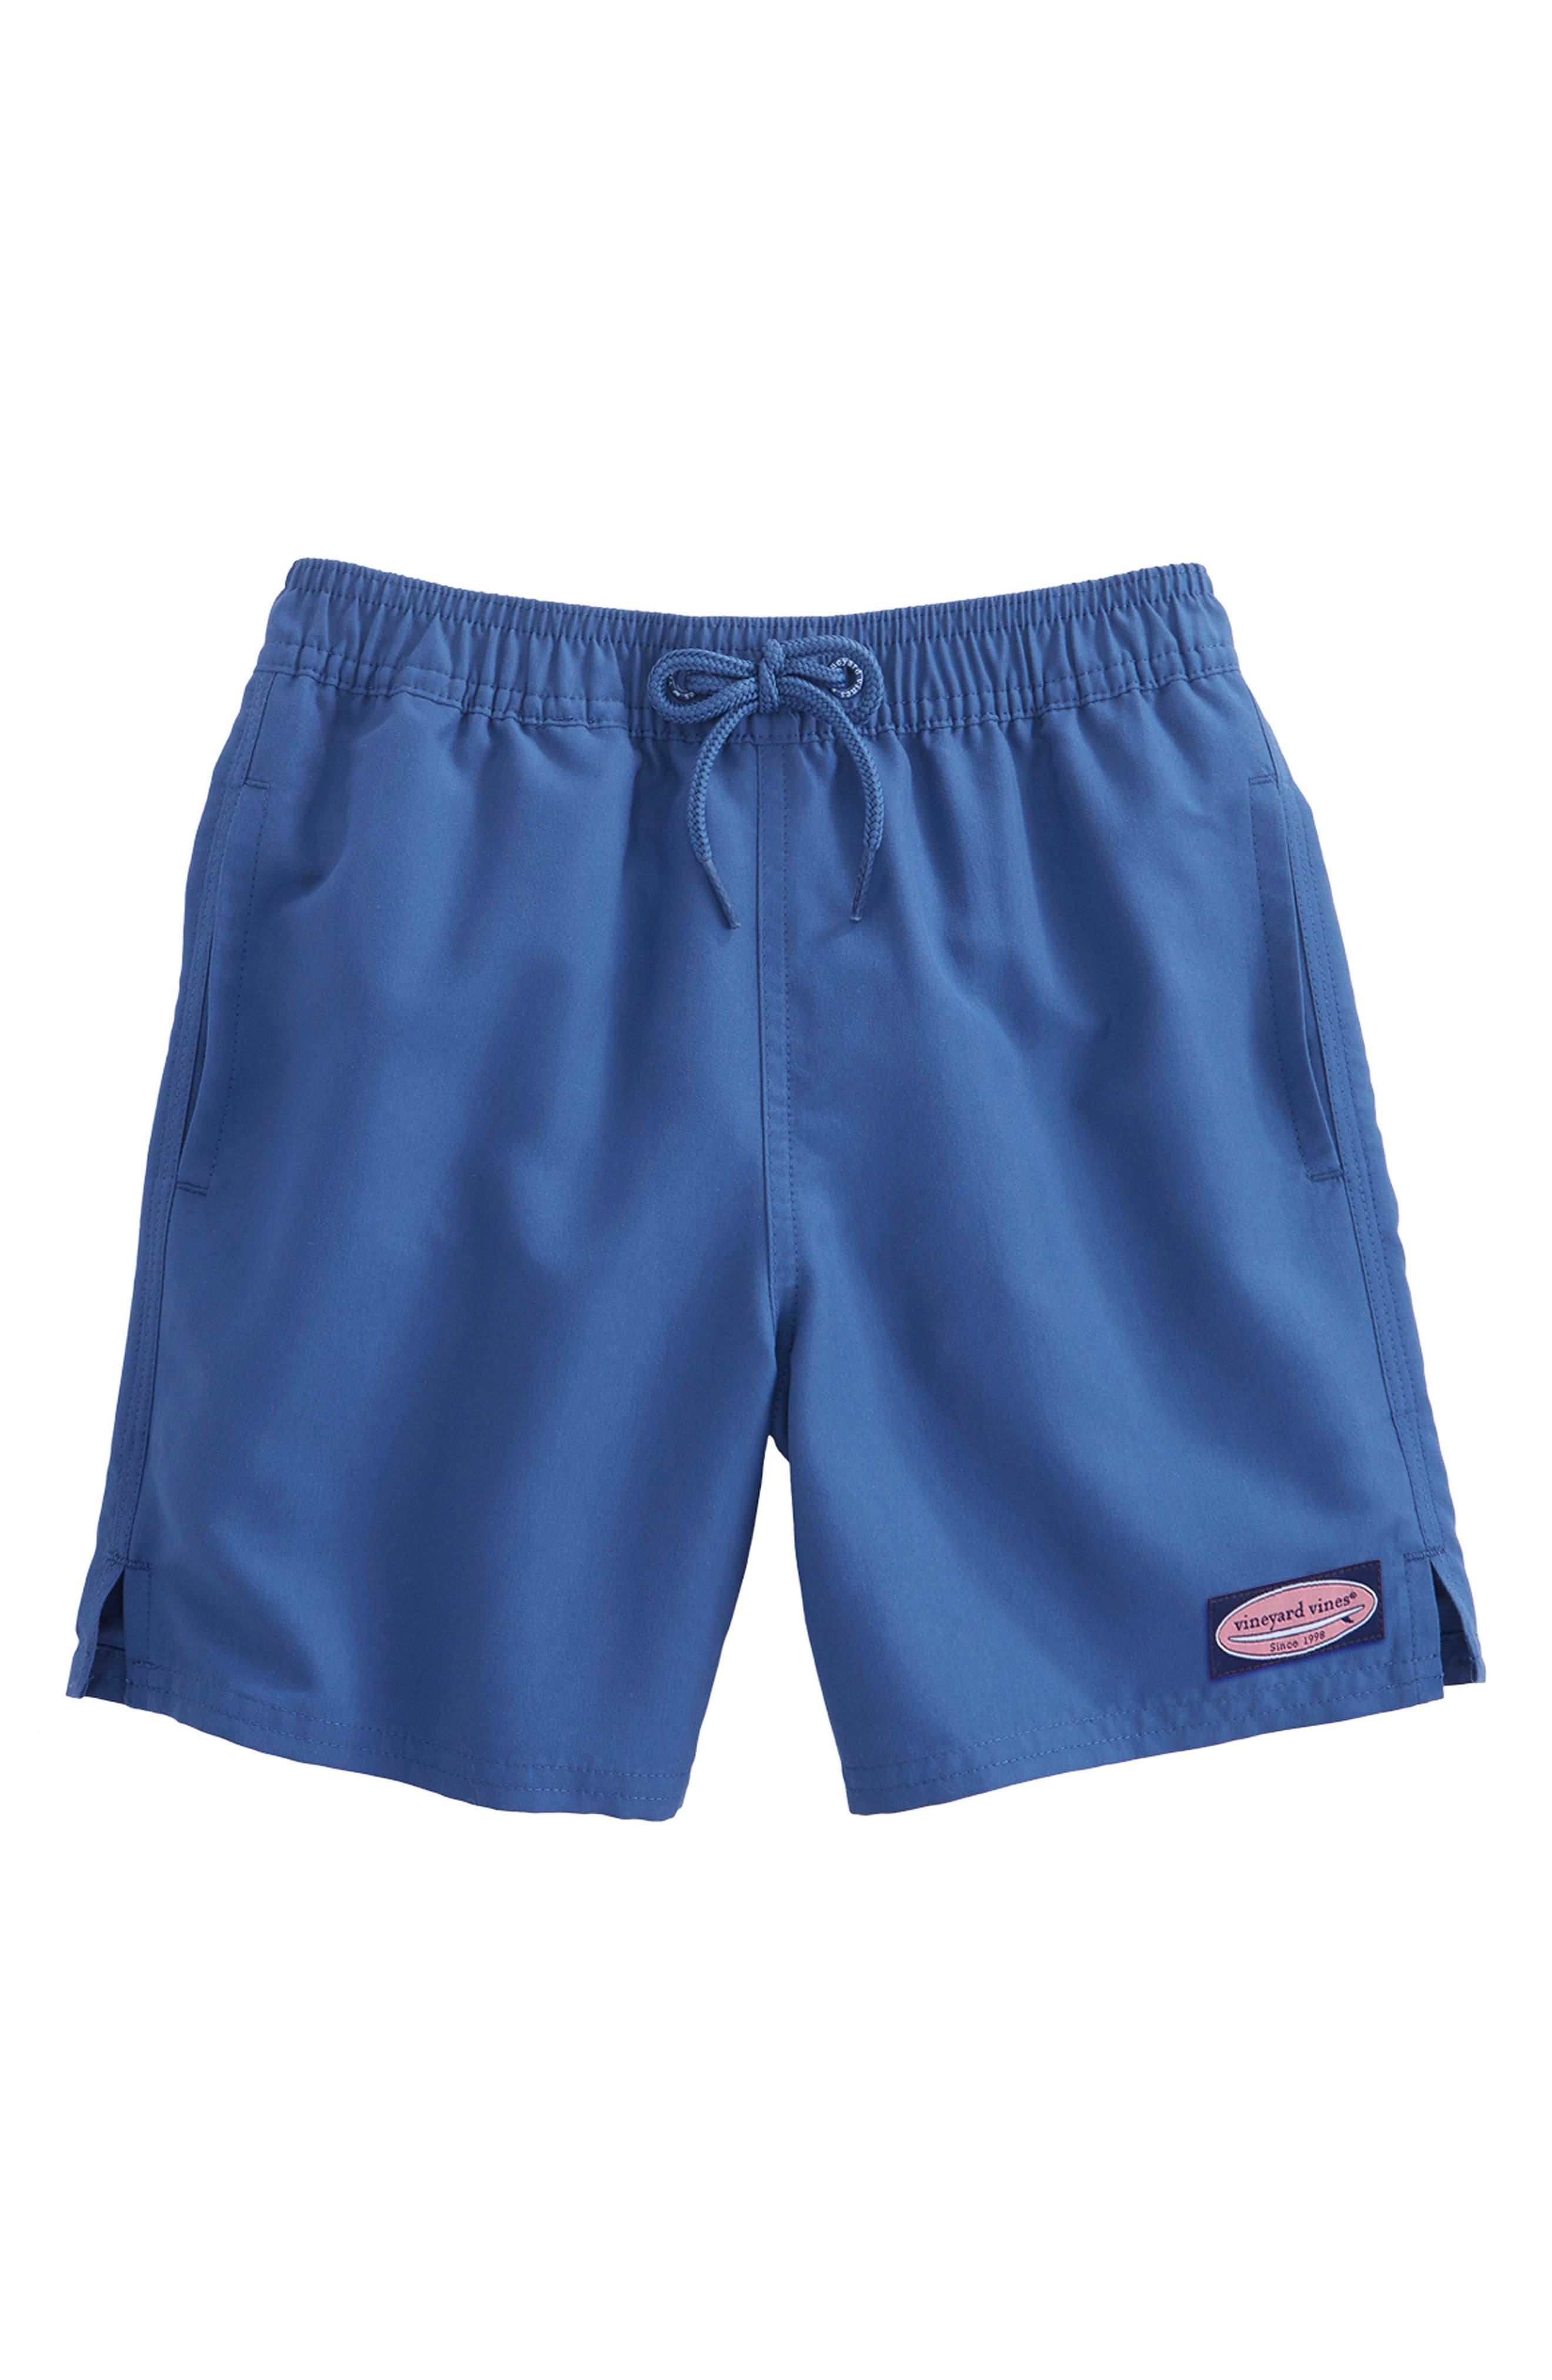 Alternate Image 1 Selected - vineyard vines Bungalow Board Shorts (Toddler Boys & Little Boys)